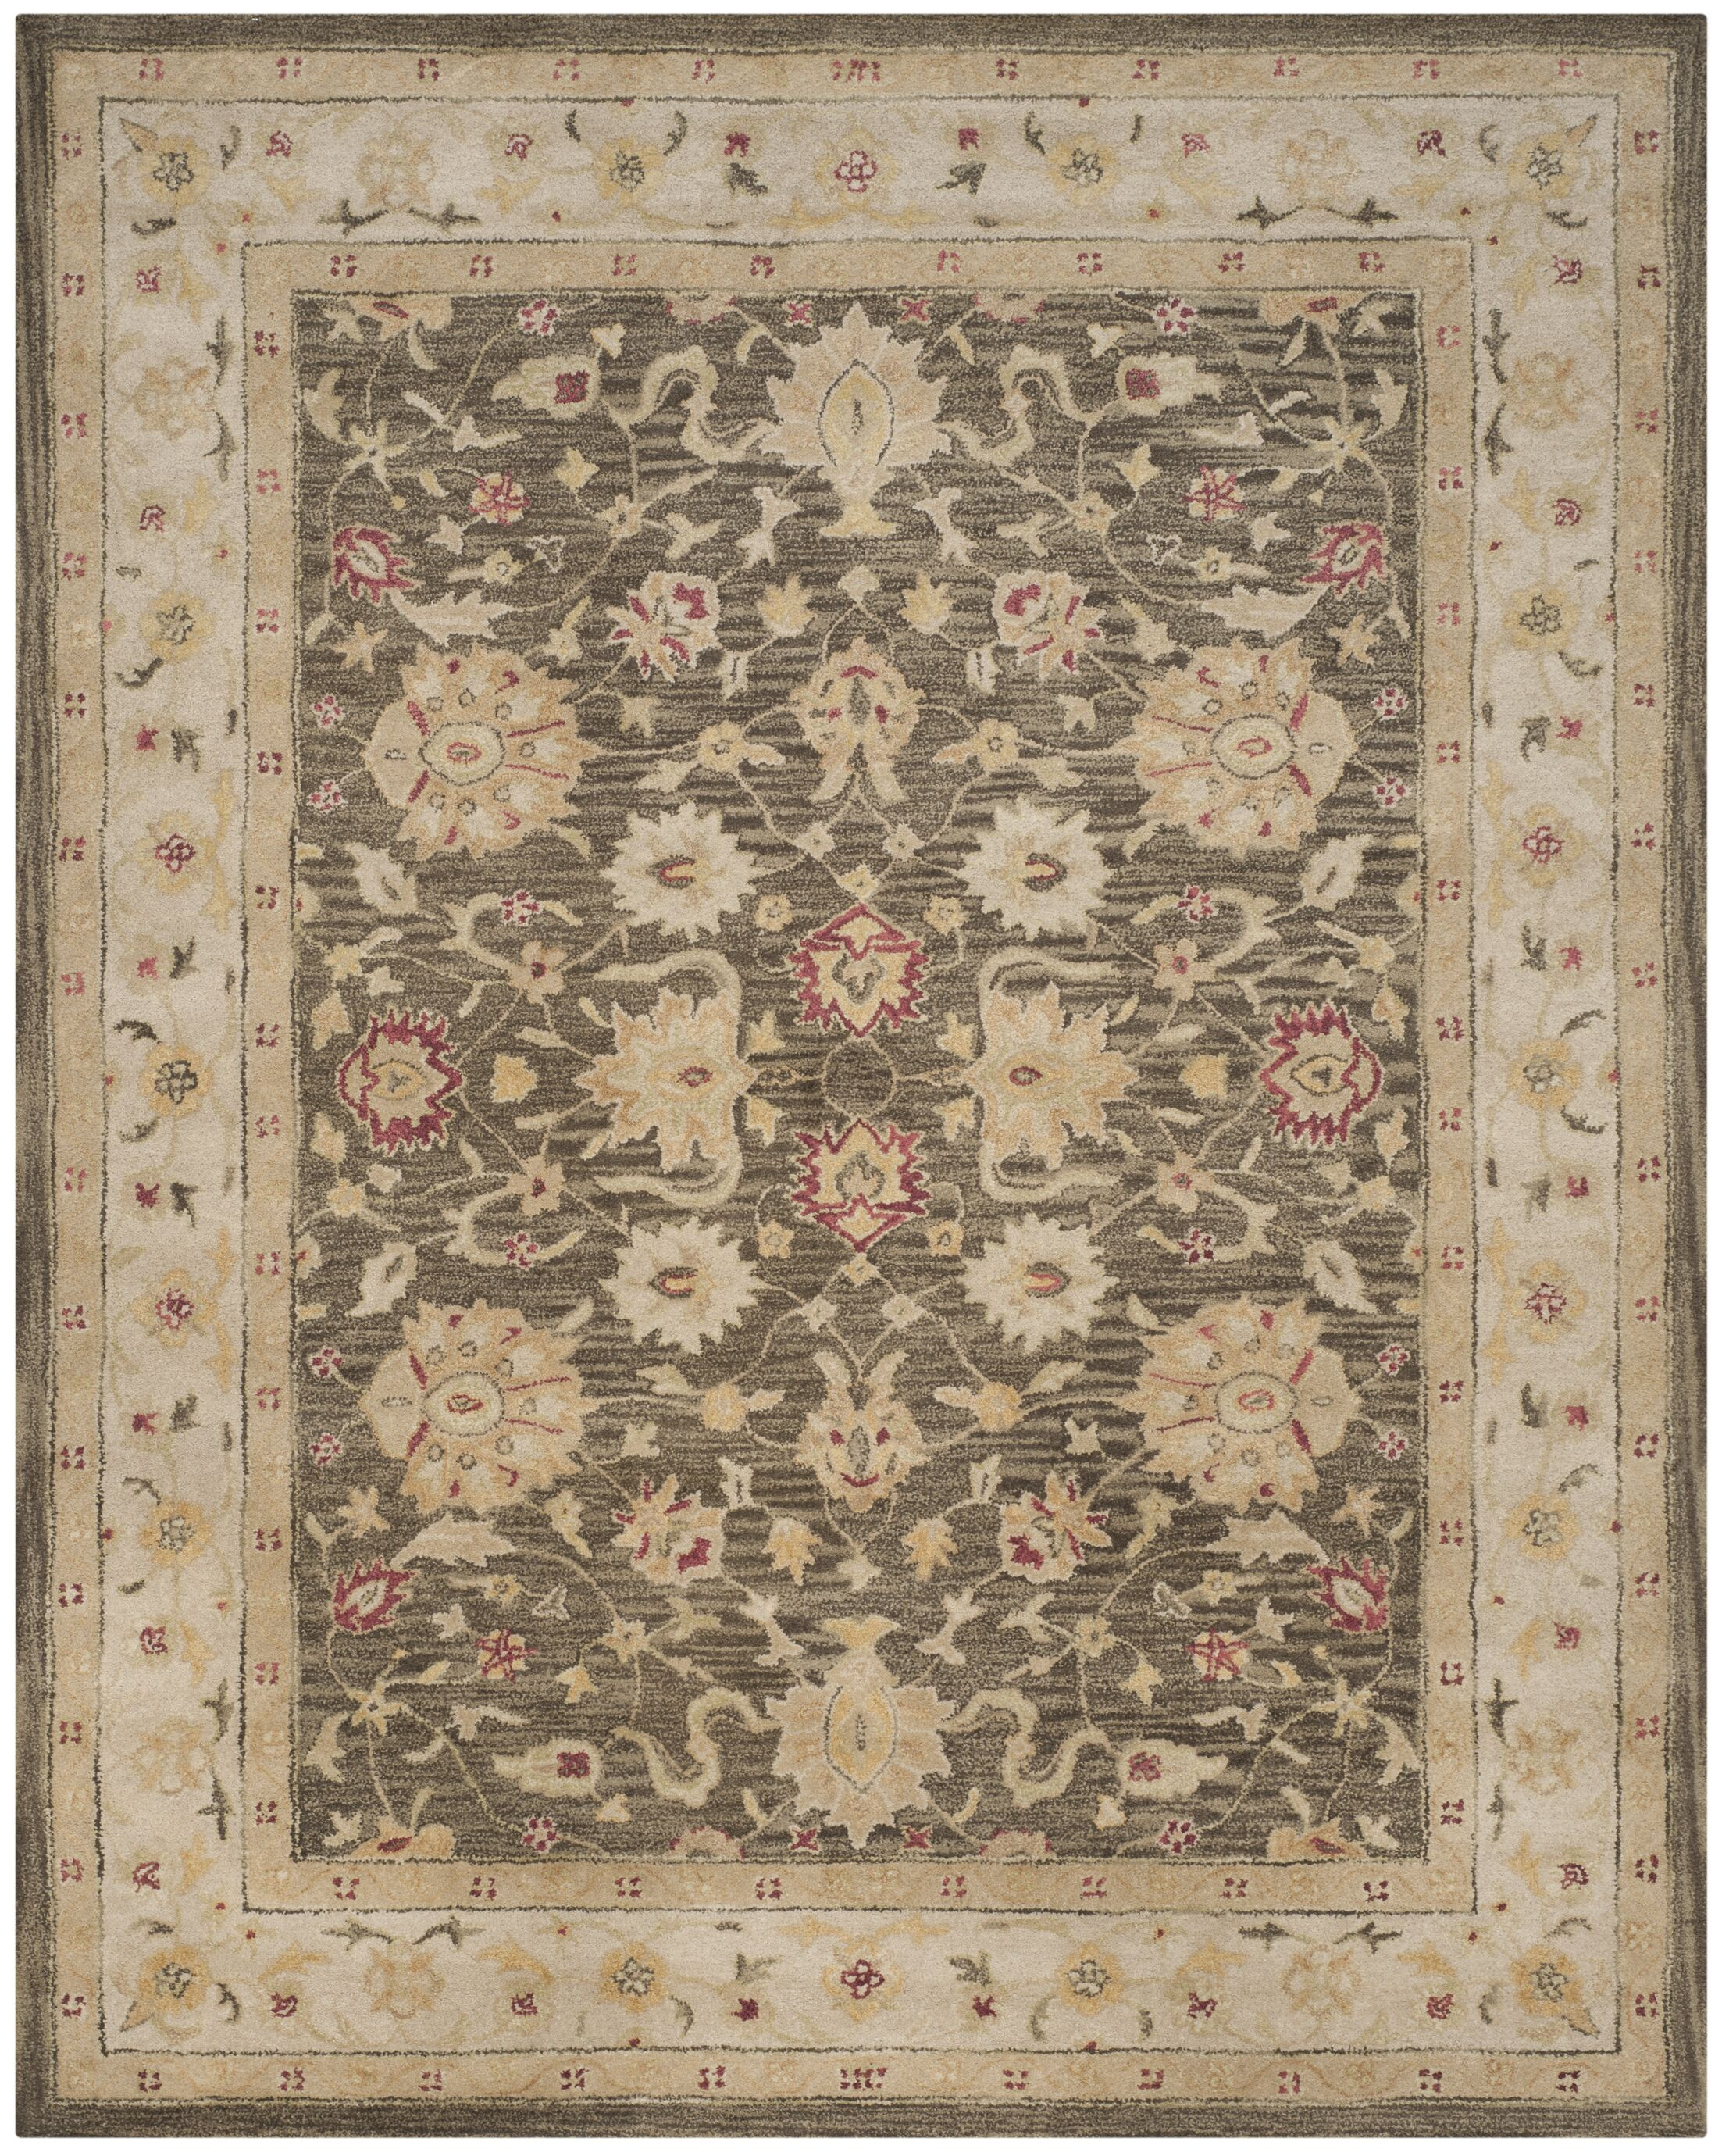 Tinley Hand-Tufted Wool Olive Gray Area Rug Rug Size: Rectangle 9'6